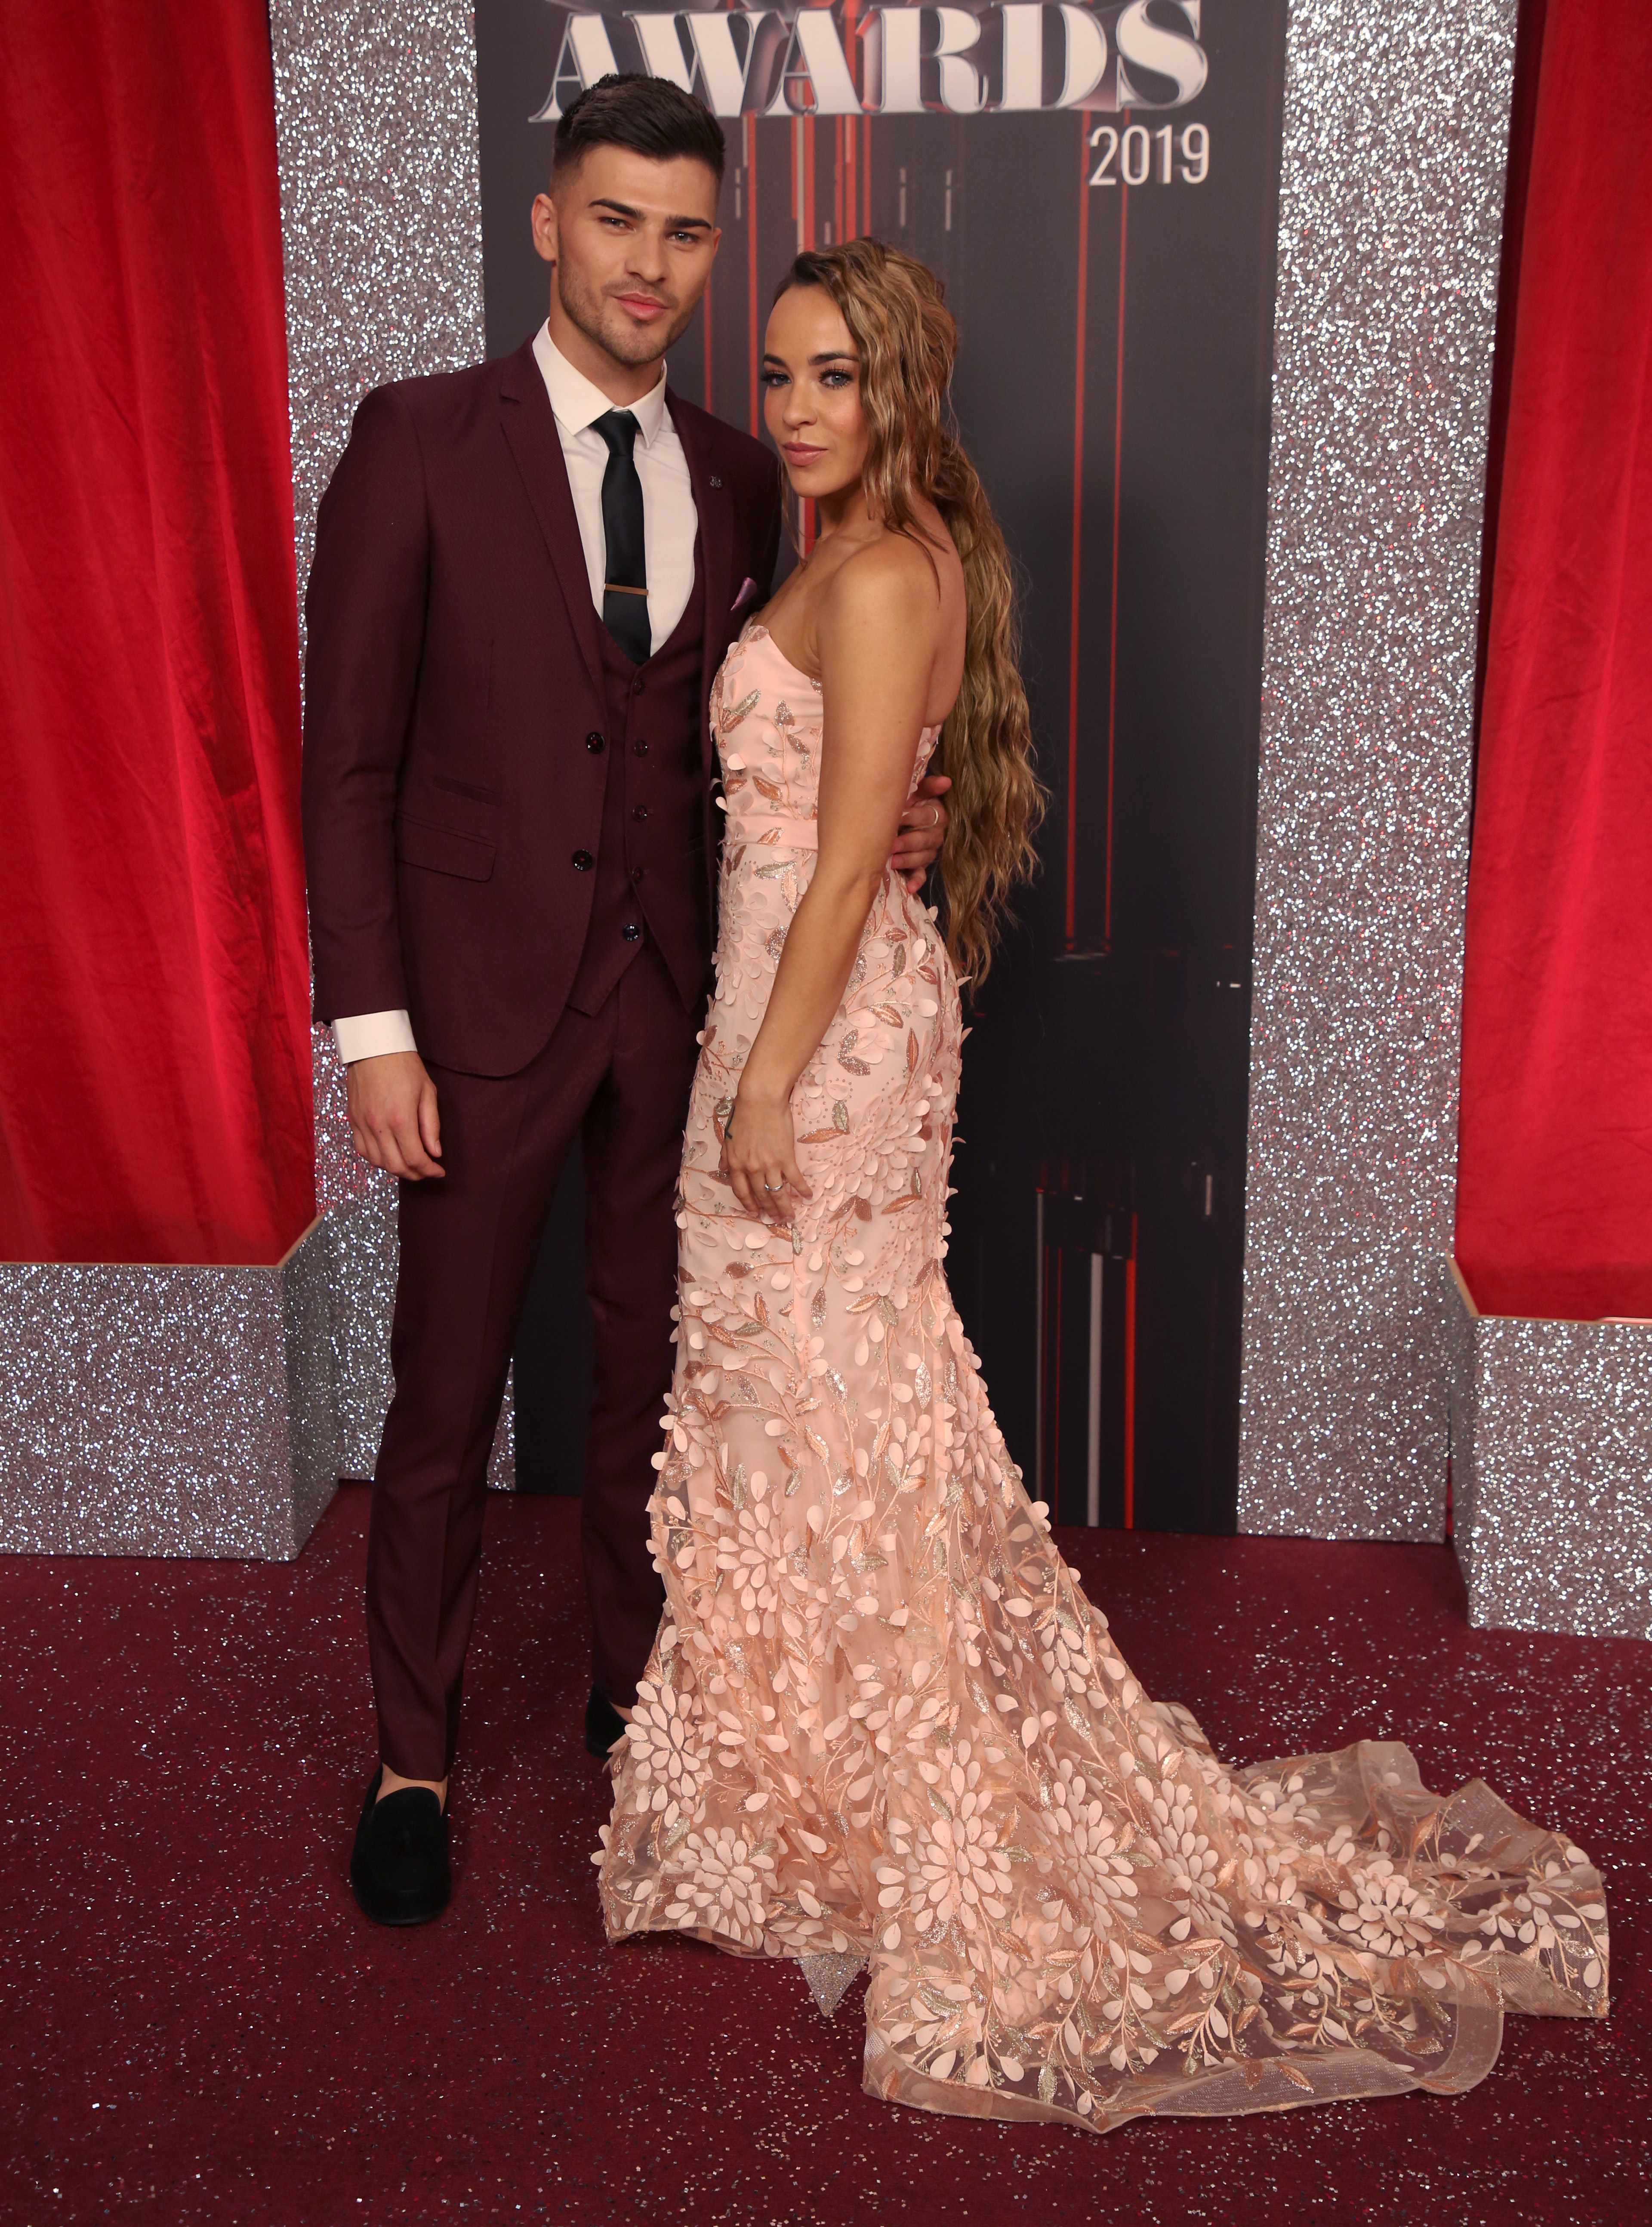 Stars attend the British Soap Awards 2019 at The Lowry in Manchester Pictured: Owen Warner,Stephanie Davis Ref: SPL5094911 010619 NON-EXCLUSIVE Picture by: SplashNews.com Splash News and Pictures Los Angeles: 310-821-2666 New York: 212-619-2666 London: 0207 644 7656 Milan: 02 4399 8577 photodesk@splashnews.com World Rights